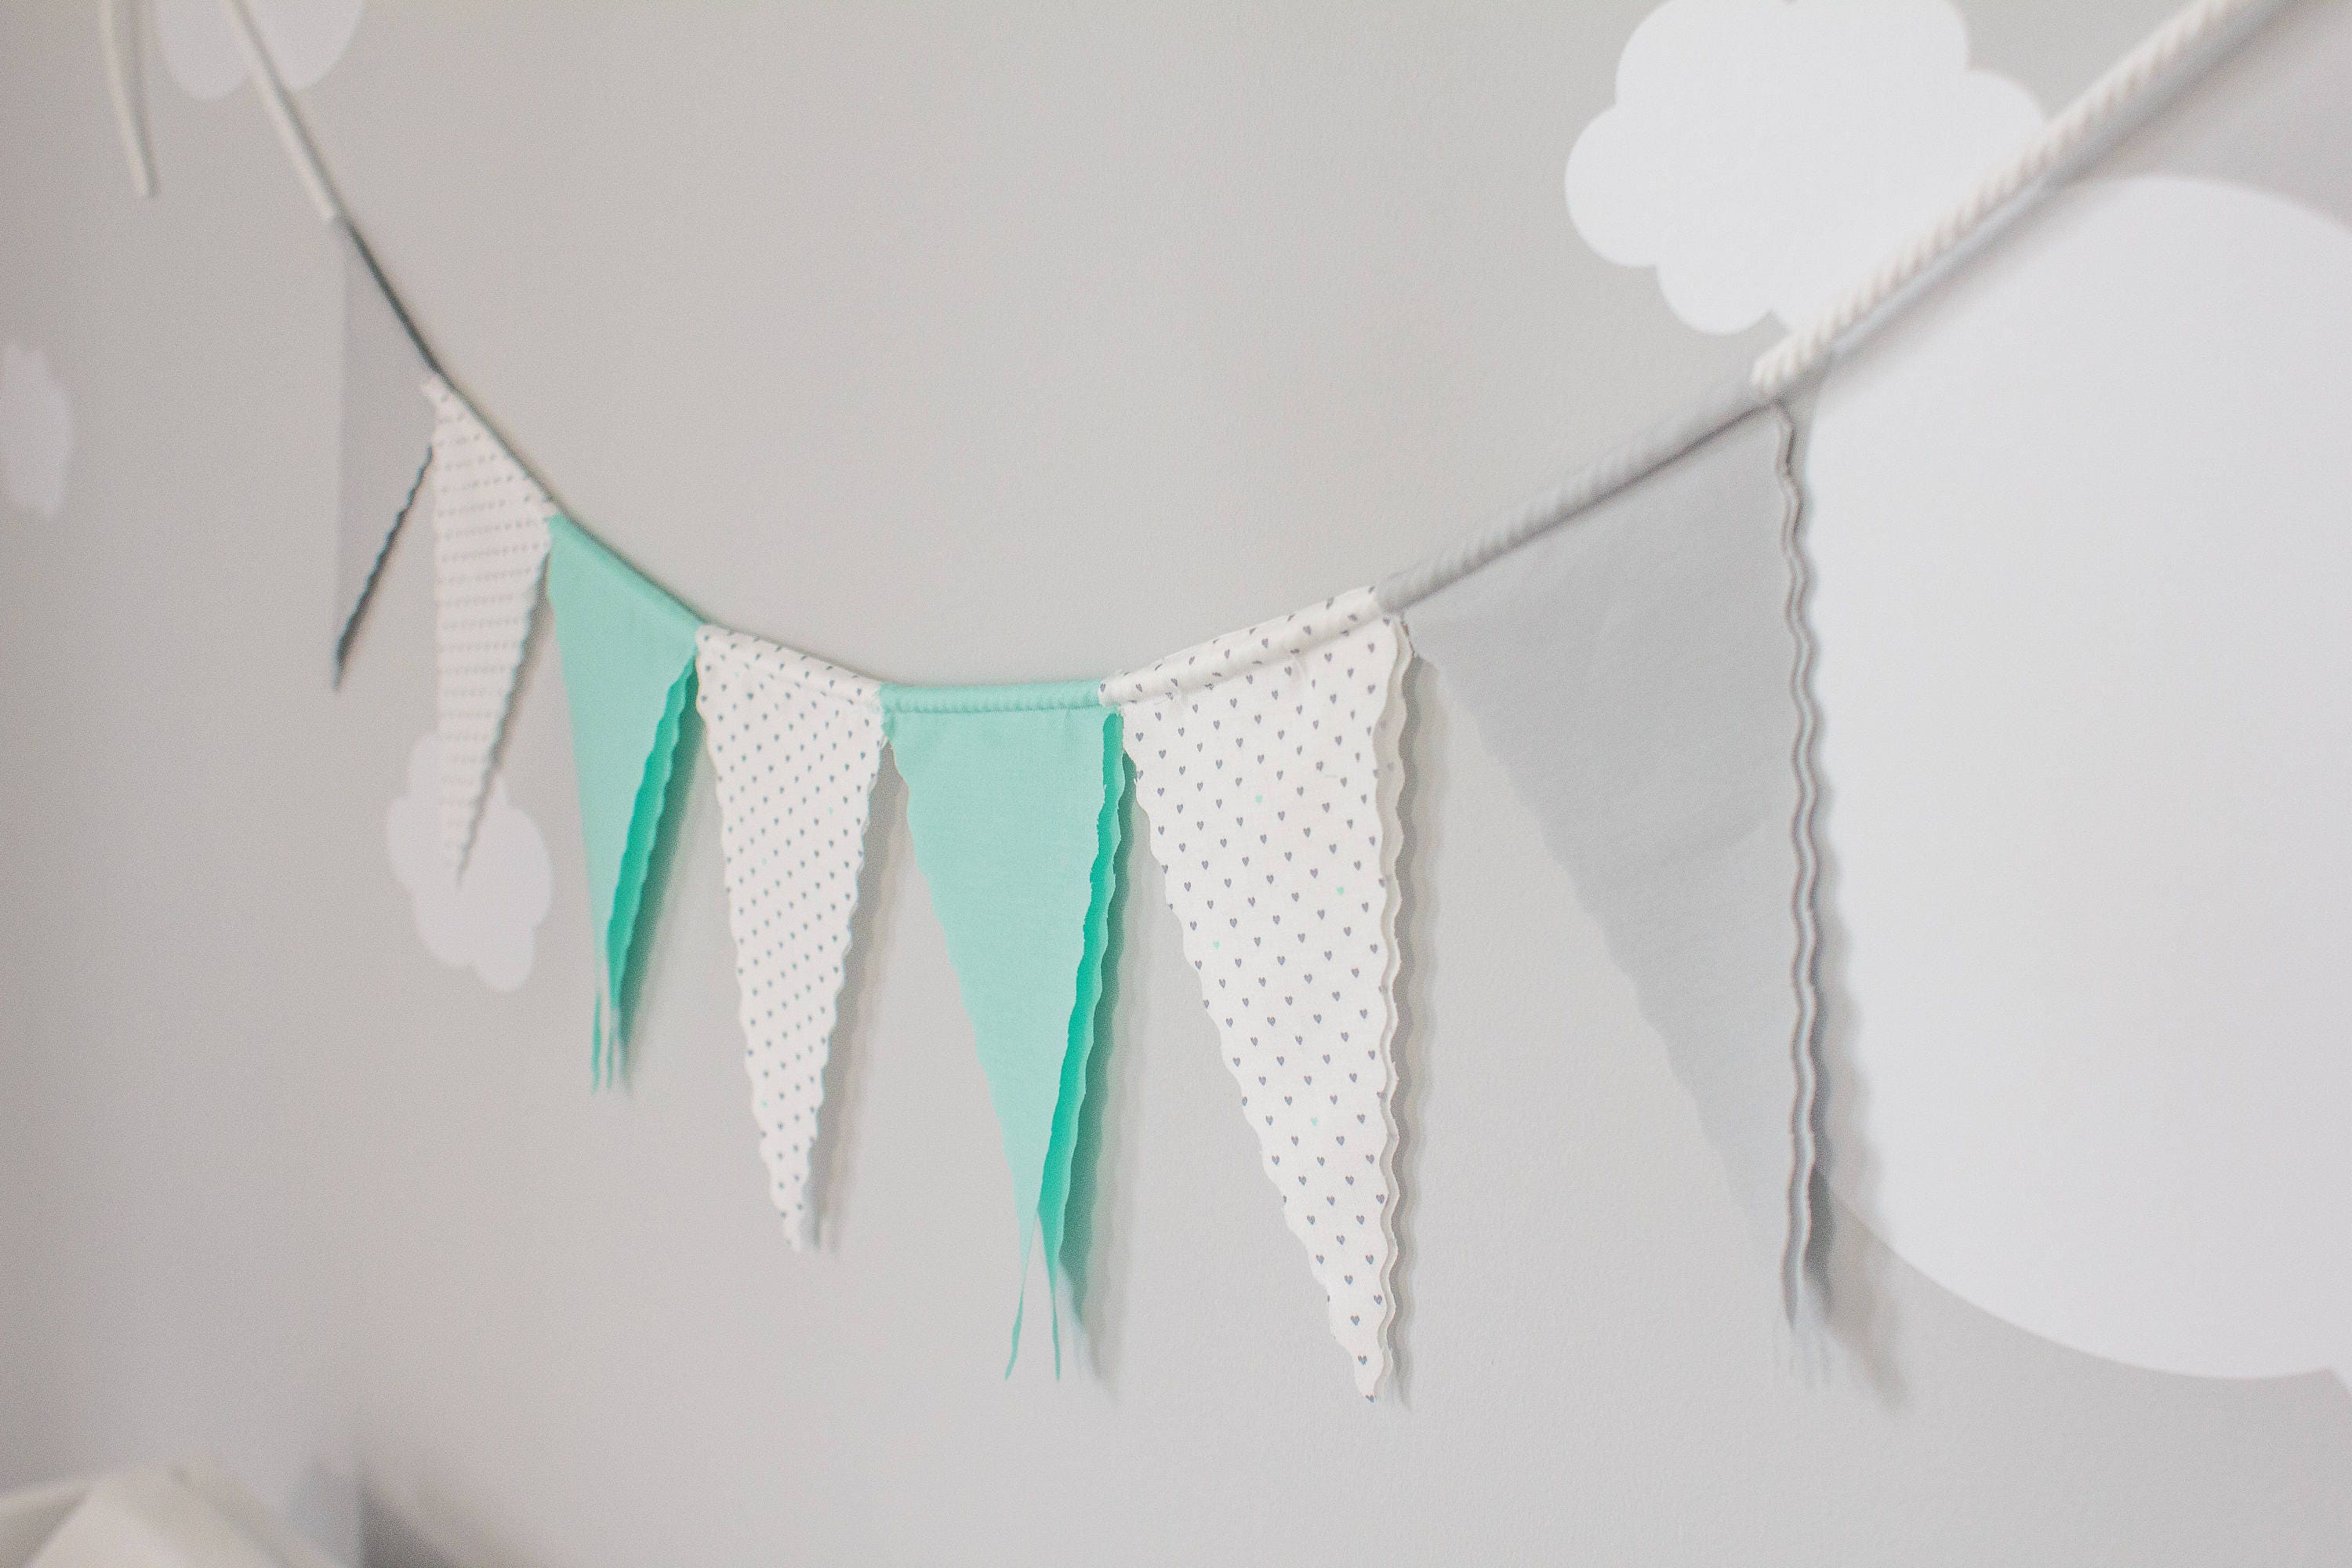 Stoff Bunting Flagge Fahne Flagge Kinderzimmer Wimpelkette